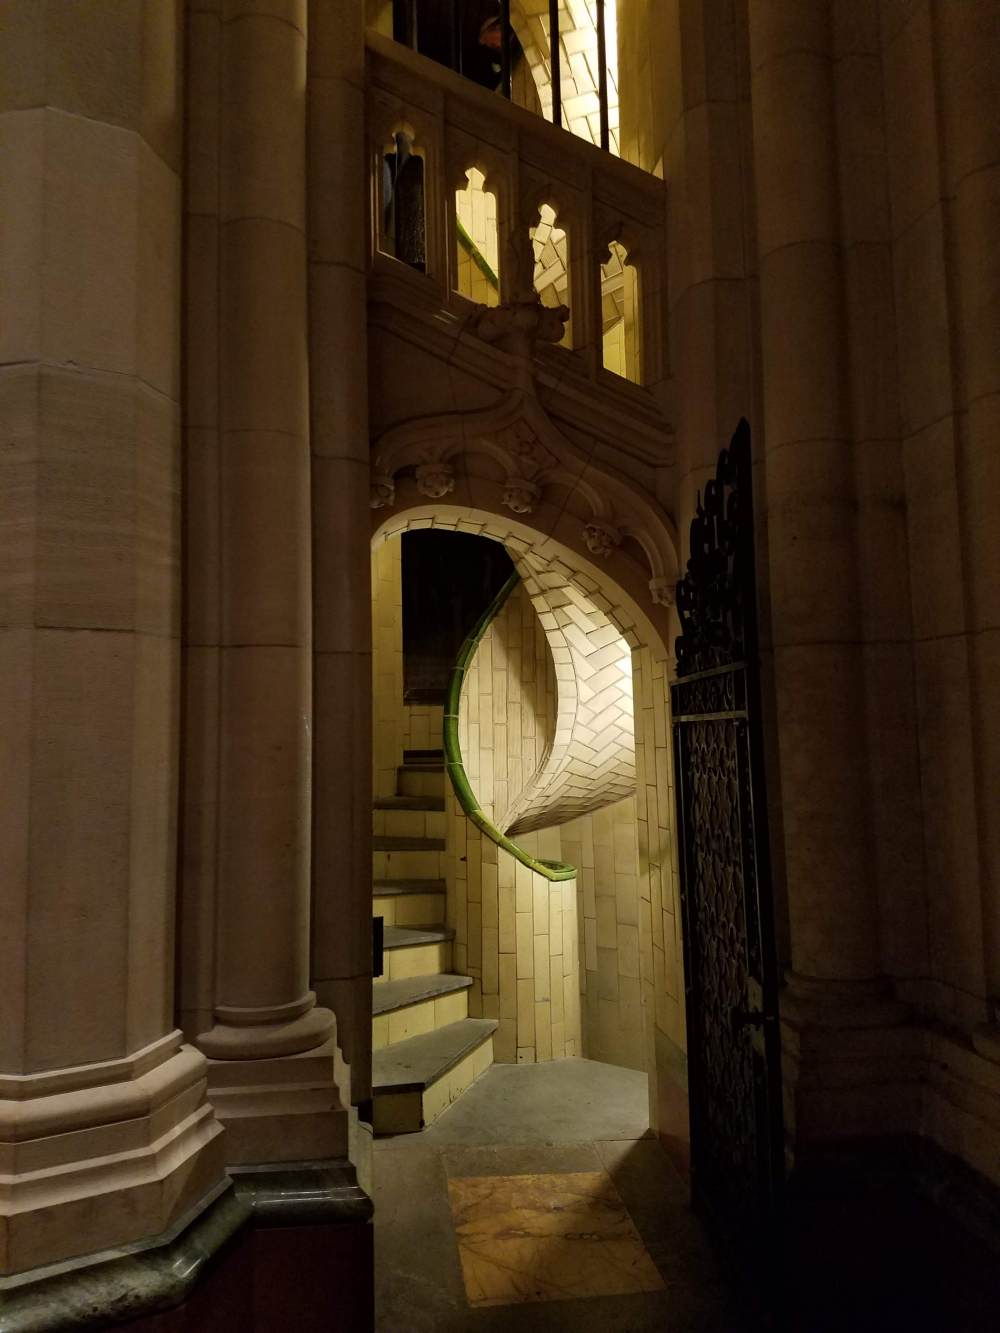 Entering the Guastavino Staircase